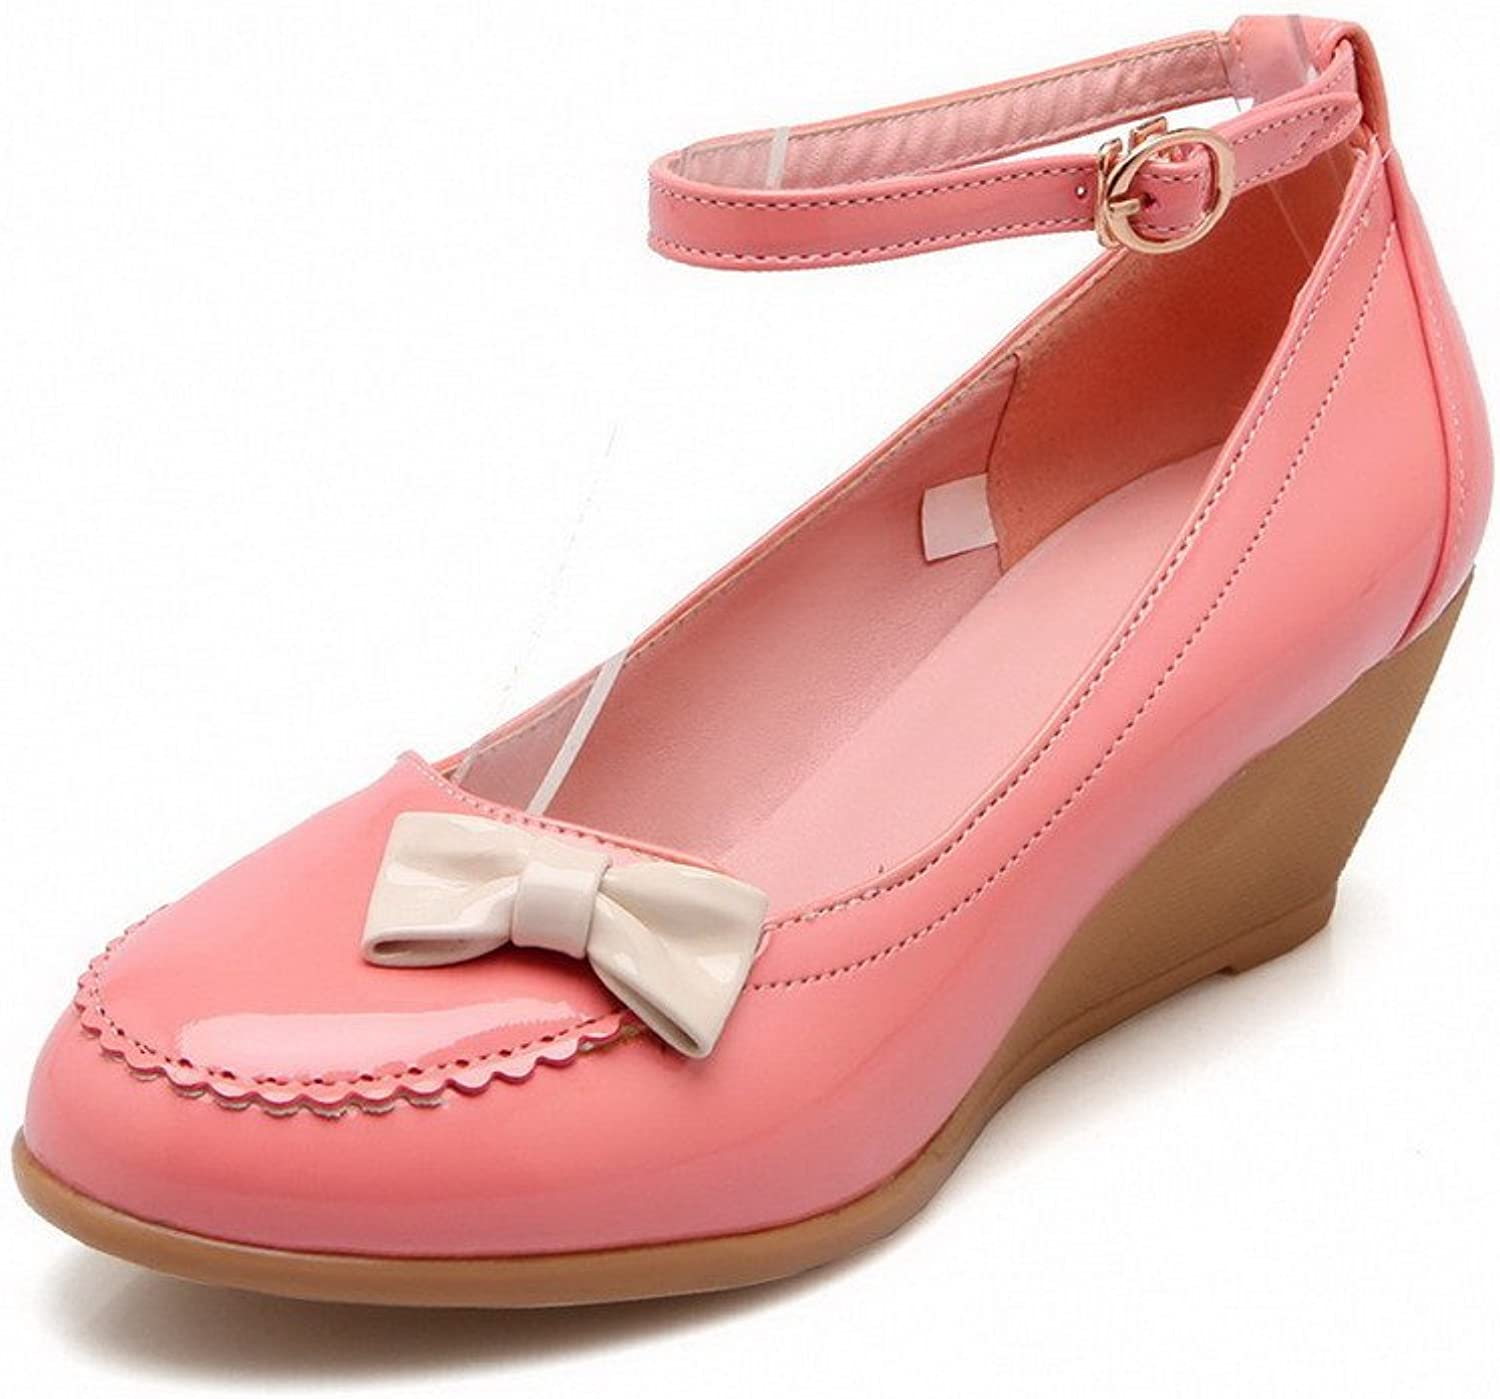 WeenFashion Women's Patent Leather Kitten-Heels Buckle Round Closed Toe Pumps-shoes